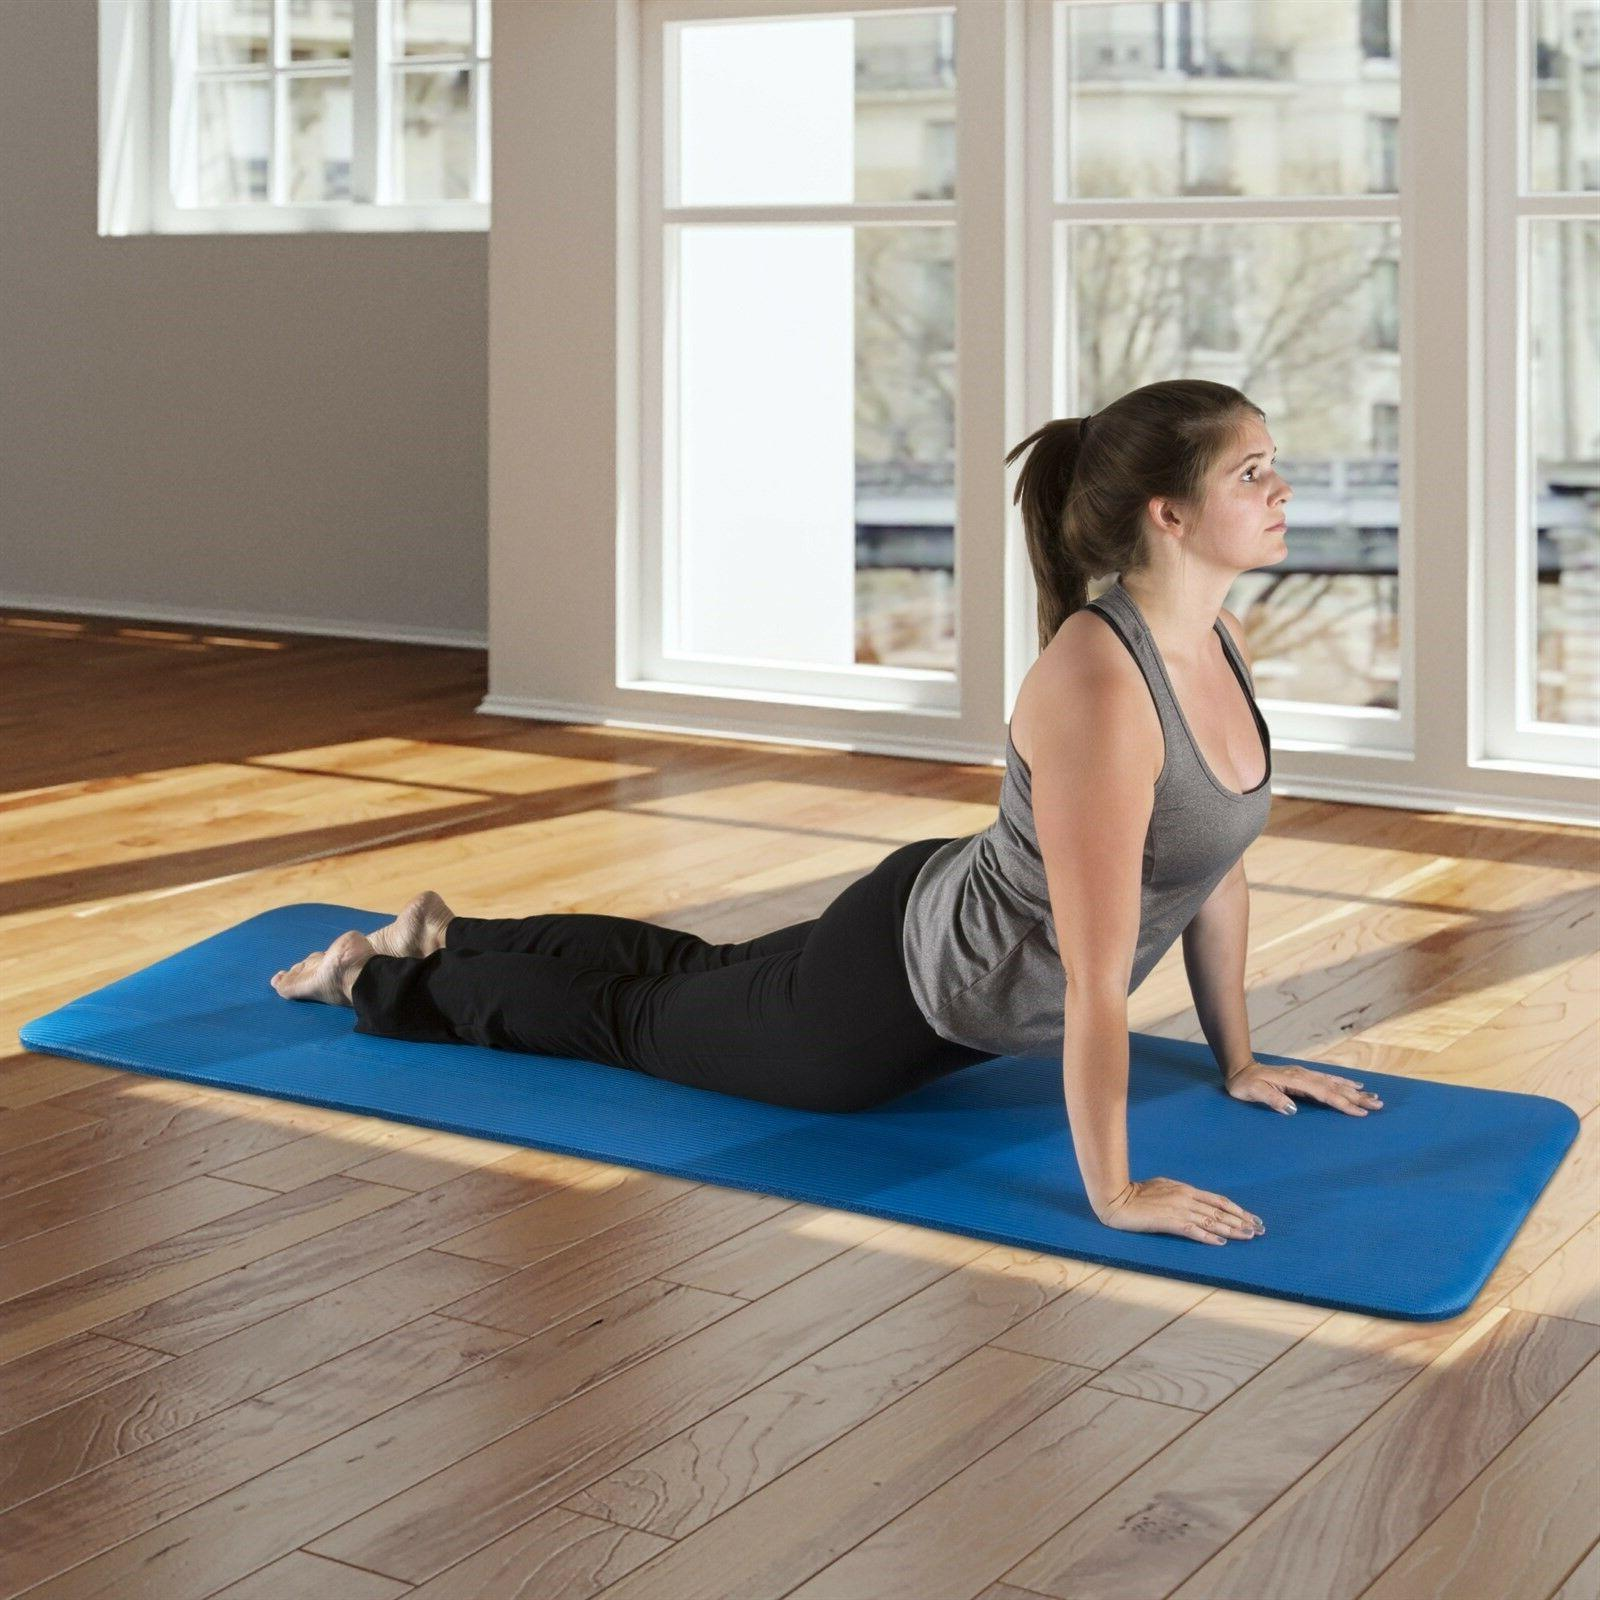 Fitness Yoga Thick Foam x Inches